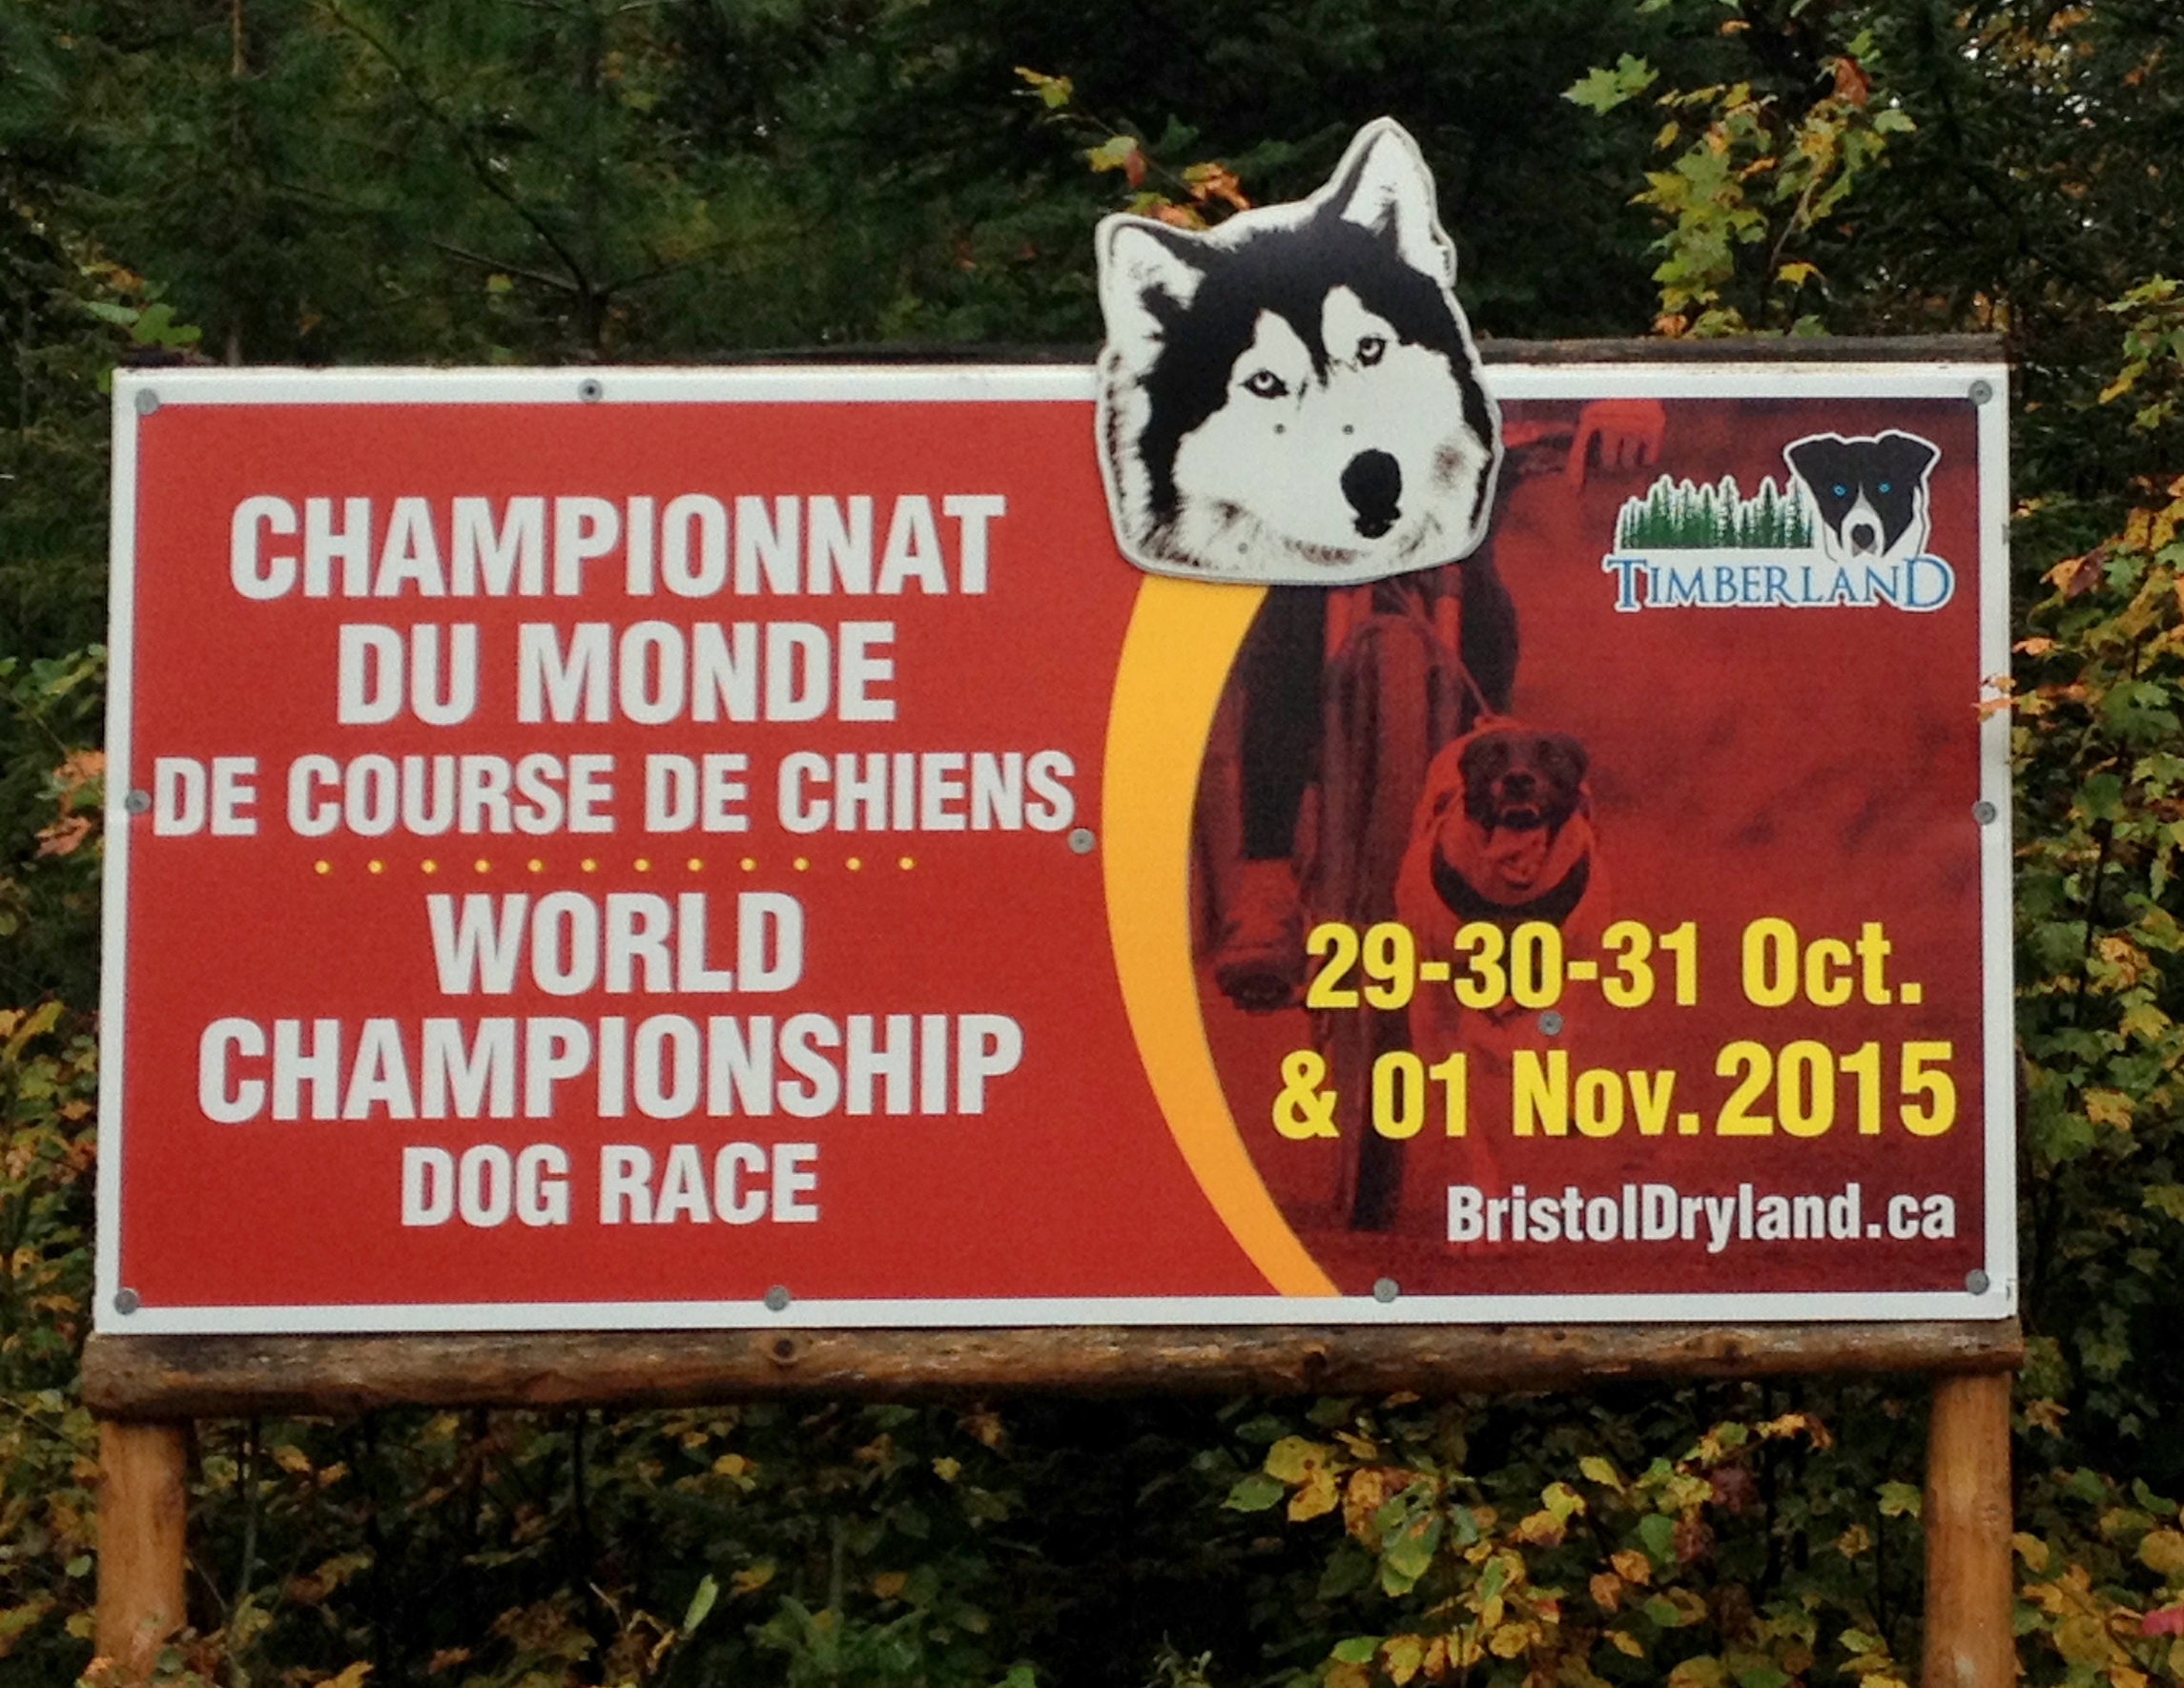 October 29-November 1 World Championship Dog Race at Timberland. Photo by Katharine Fletcher.